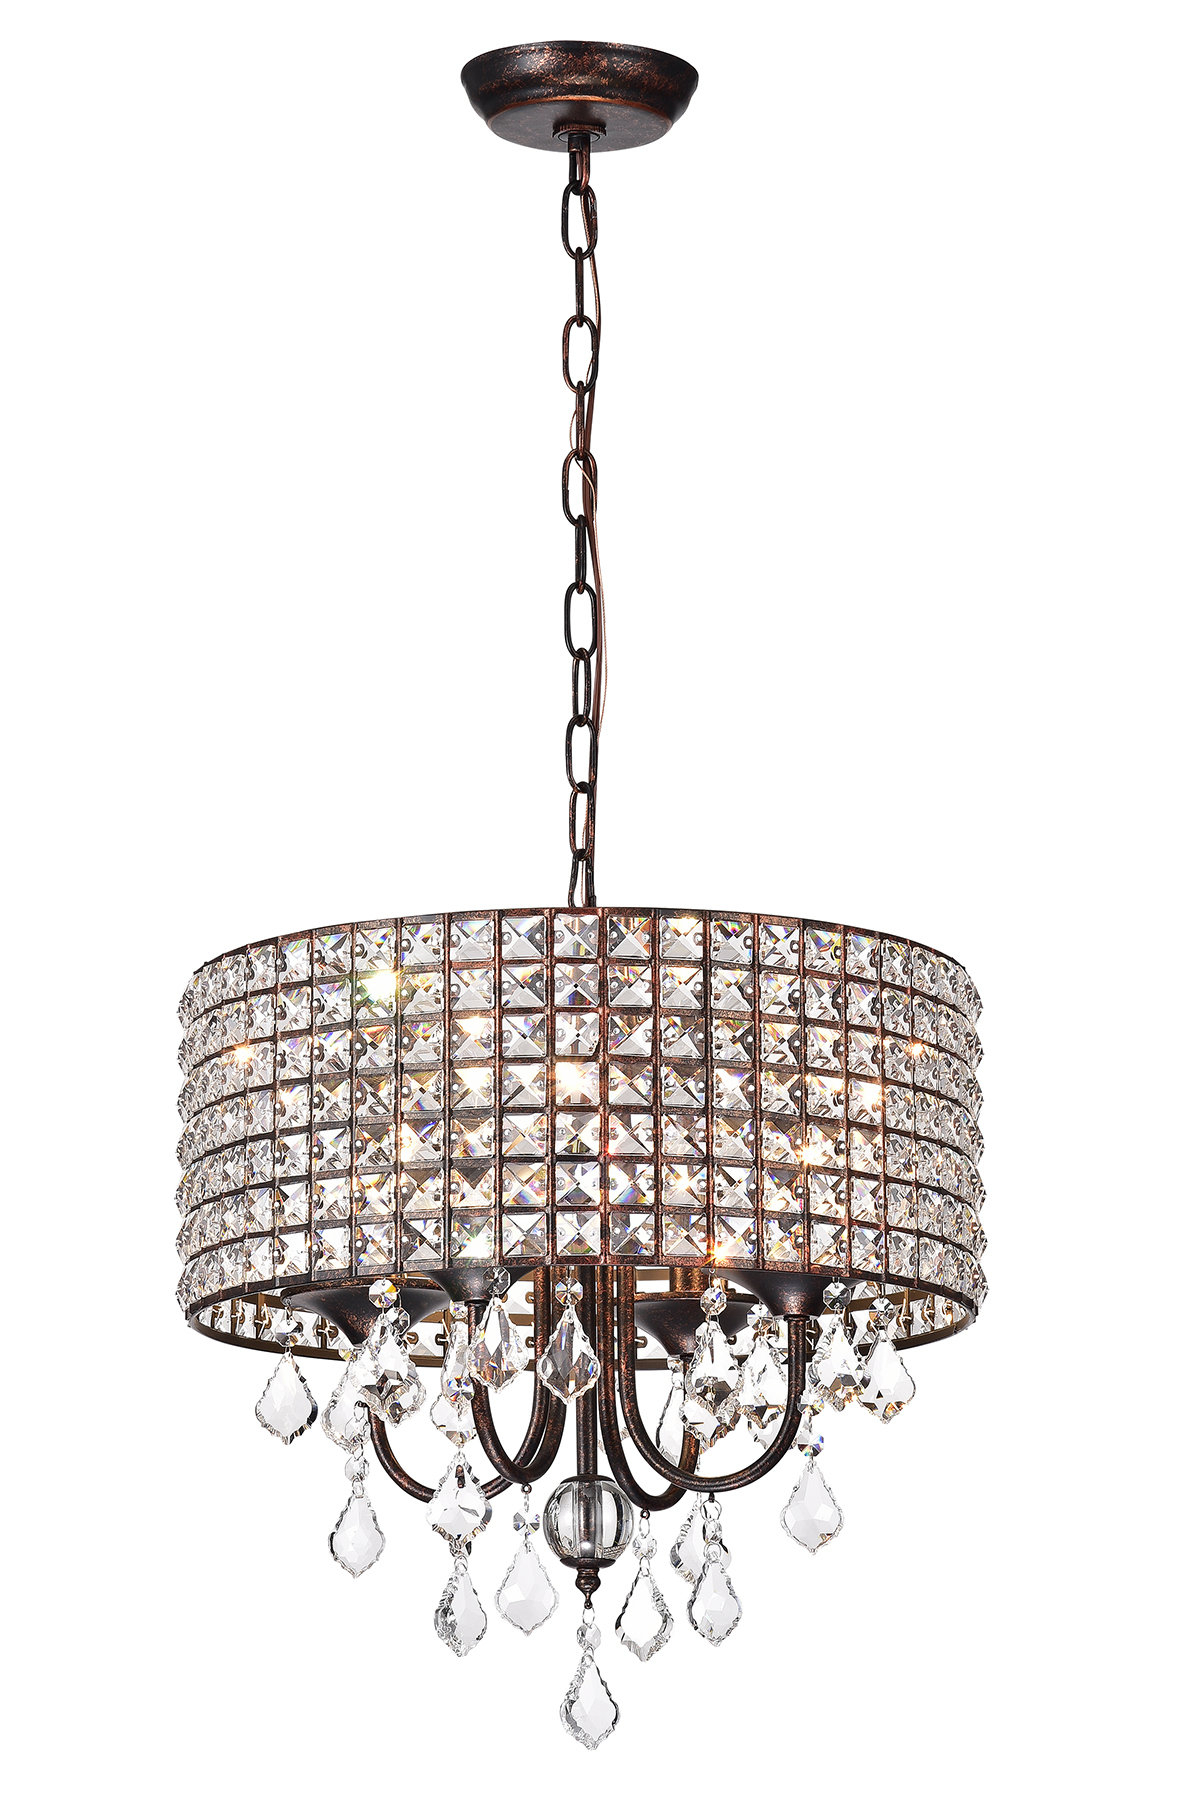 Mckamey 4 Light Crystal Chandeliers With 2019 Lavada 4 Light Drum Chandelier (View 14 of 20)